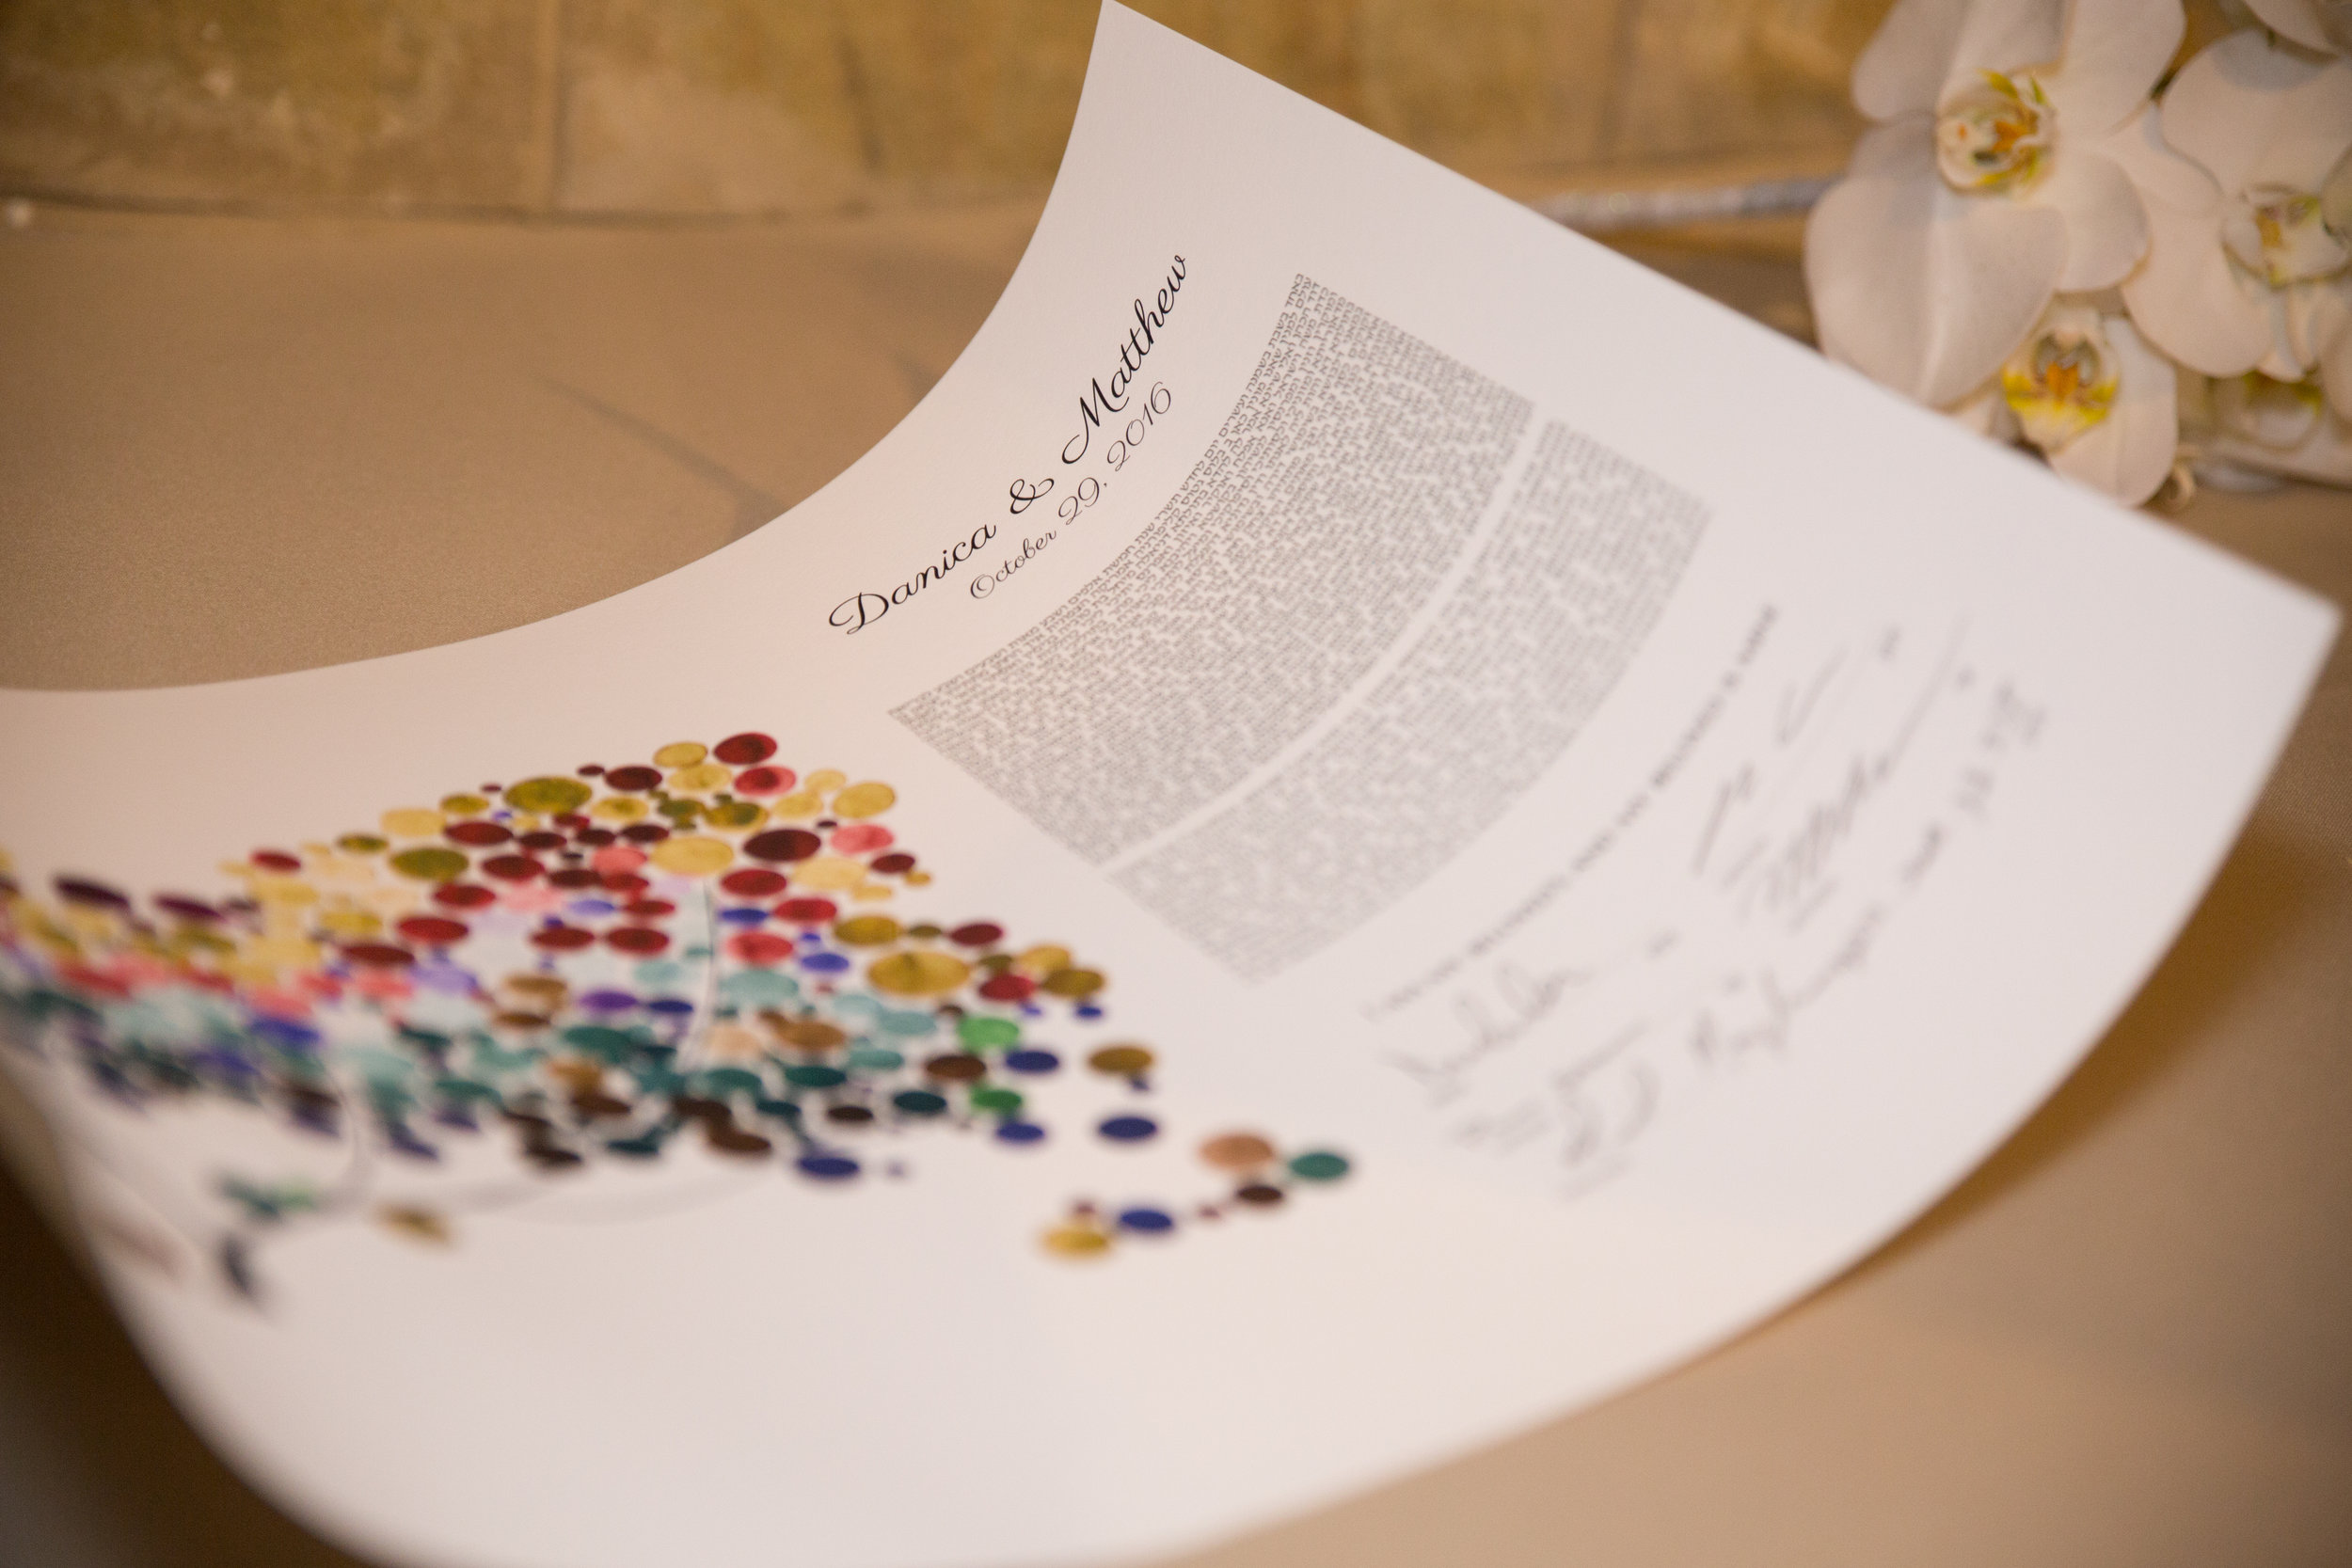 The ketubah is a traditional Jewish document which documents the rights and responsibilities of the couple in their marriage. This personalized ketubah came all the way from Romania!